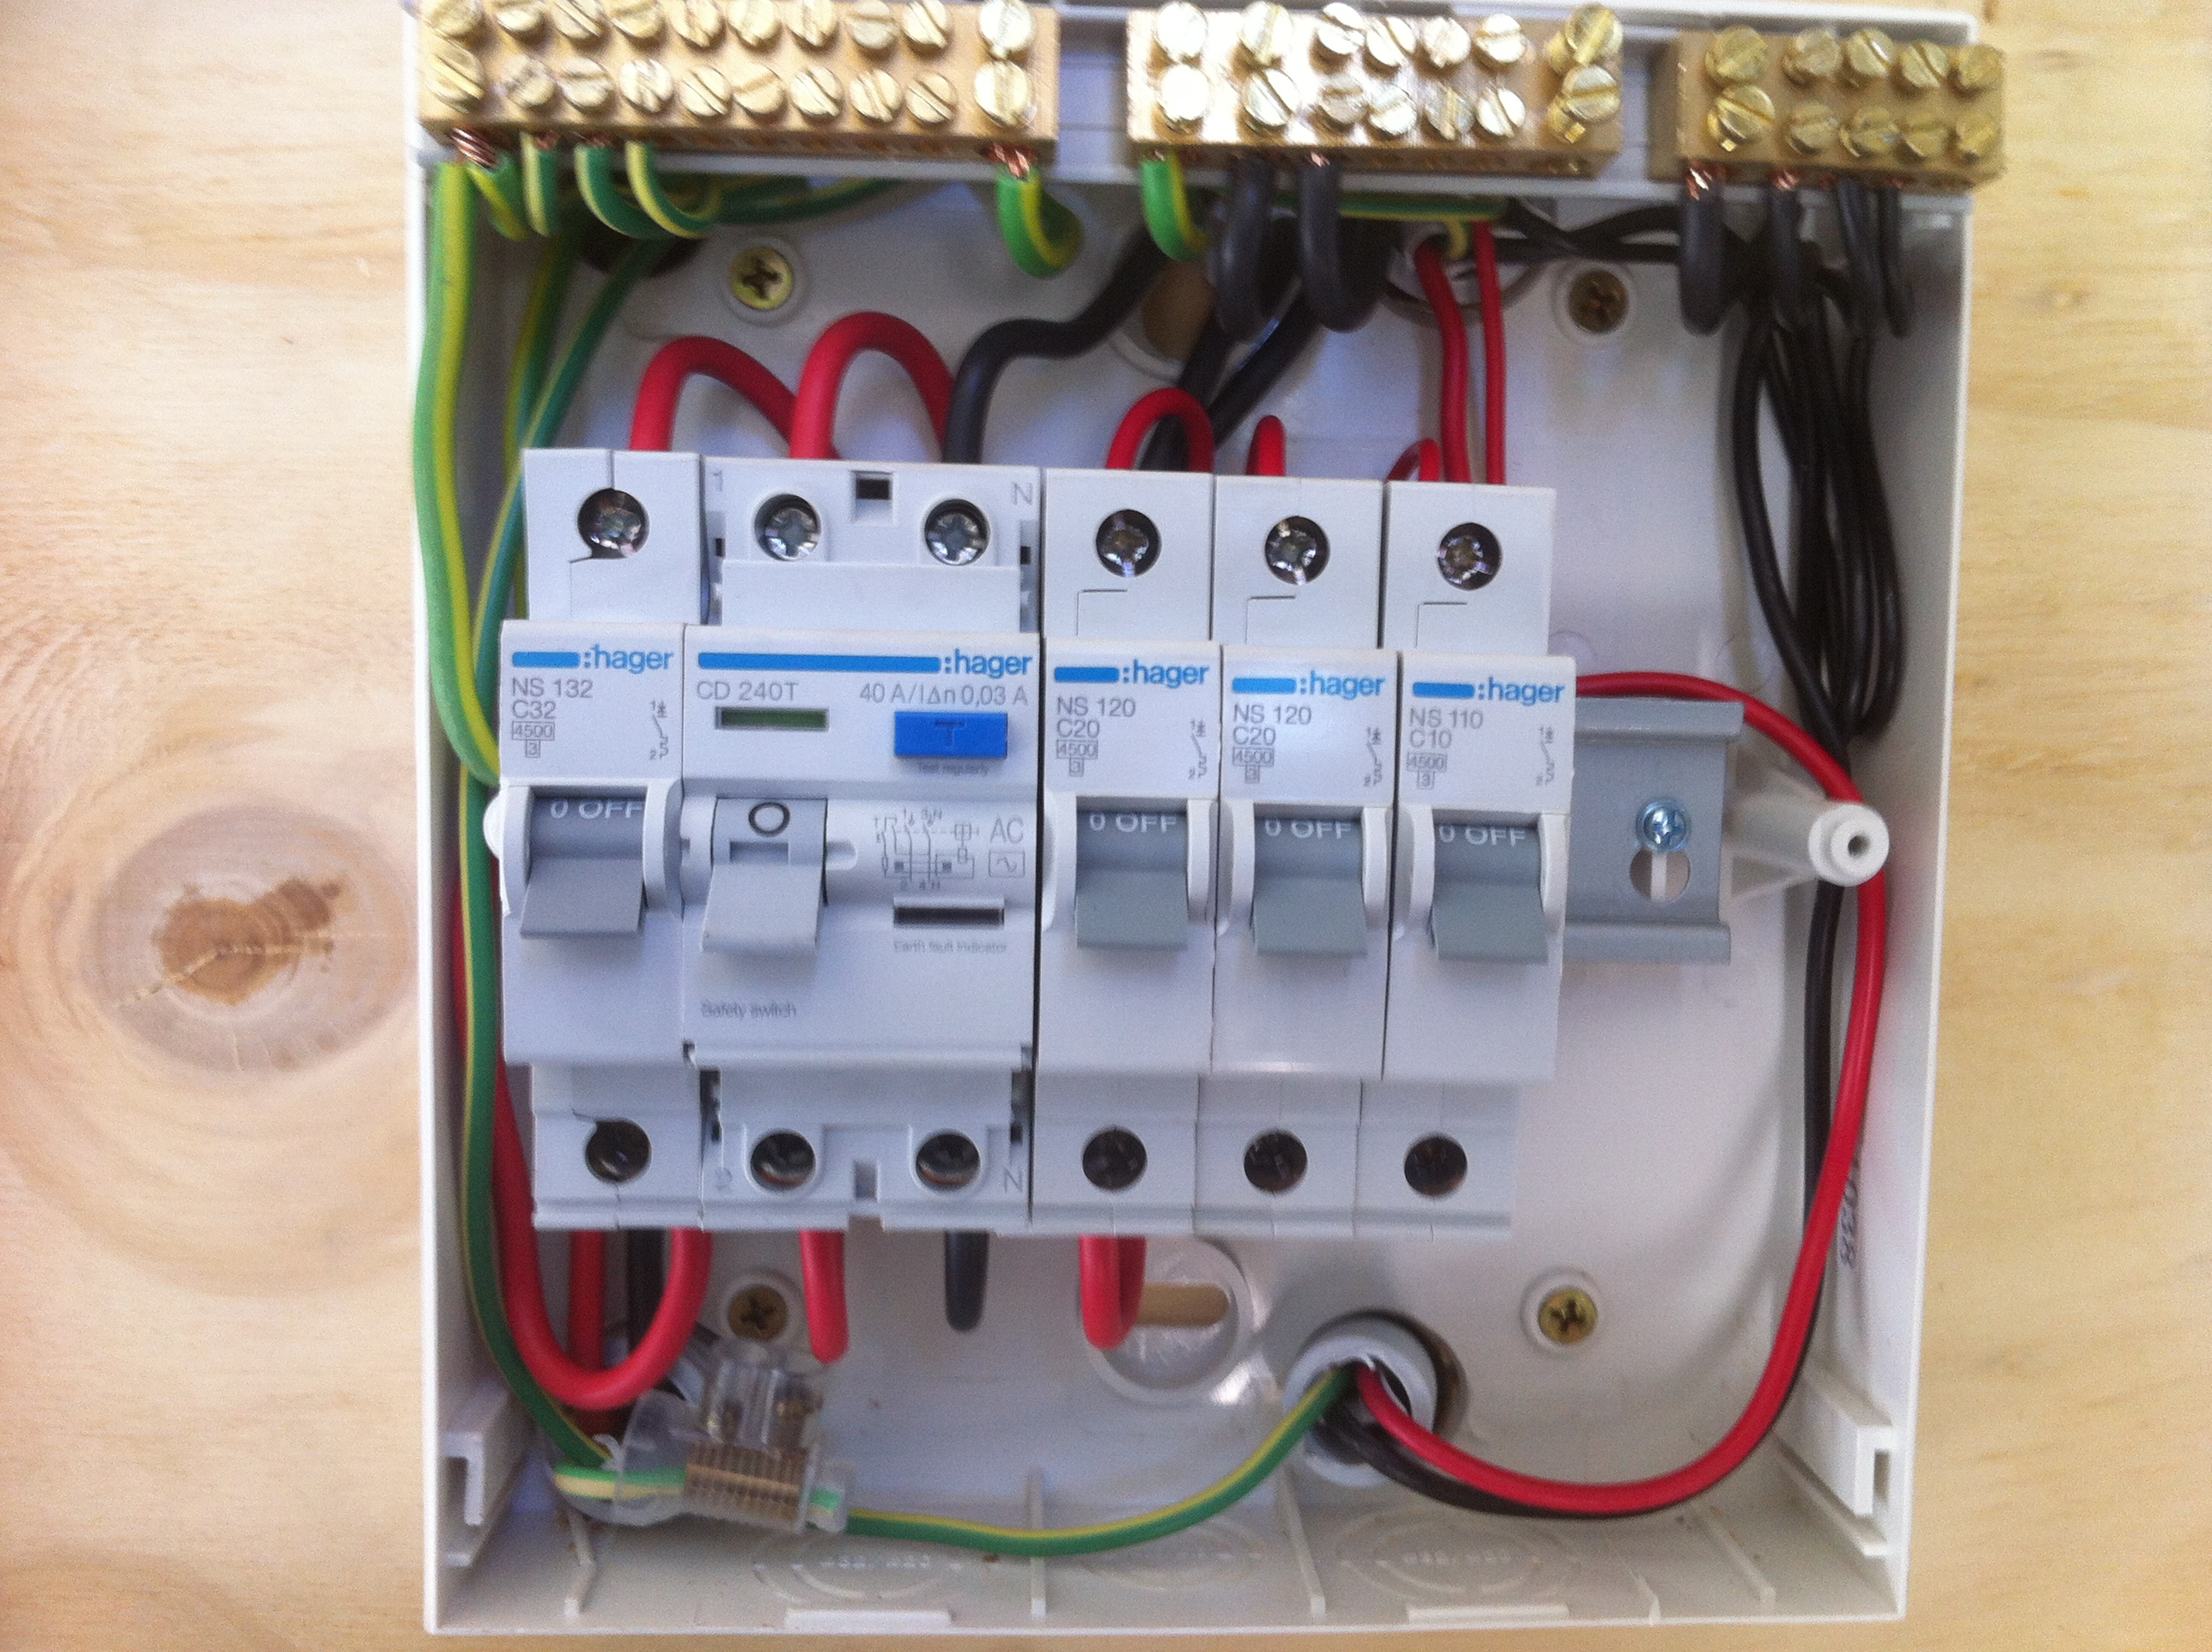 Switchboard wiring au electrical drawing wiring diagram services astra electrical rh astraelectrical com au domestic switchboard wiring diagram australia switchboard wiring diagram australia cheapraybanclubmaster Gallery